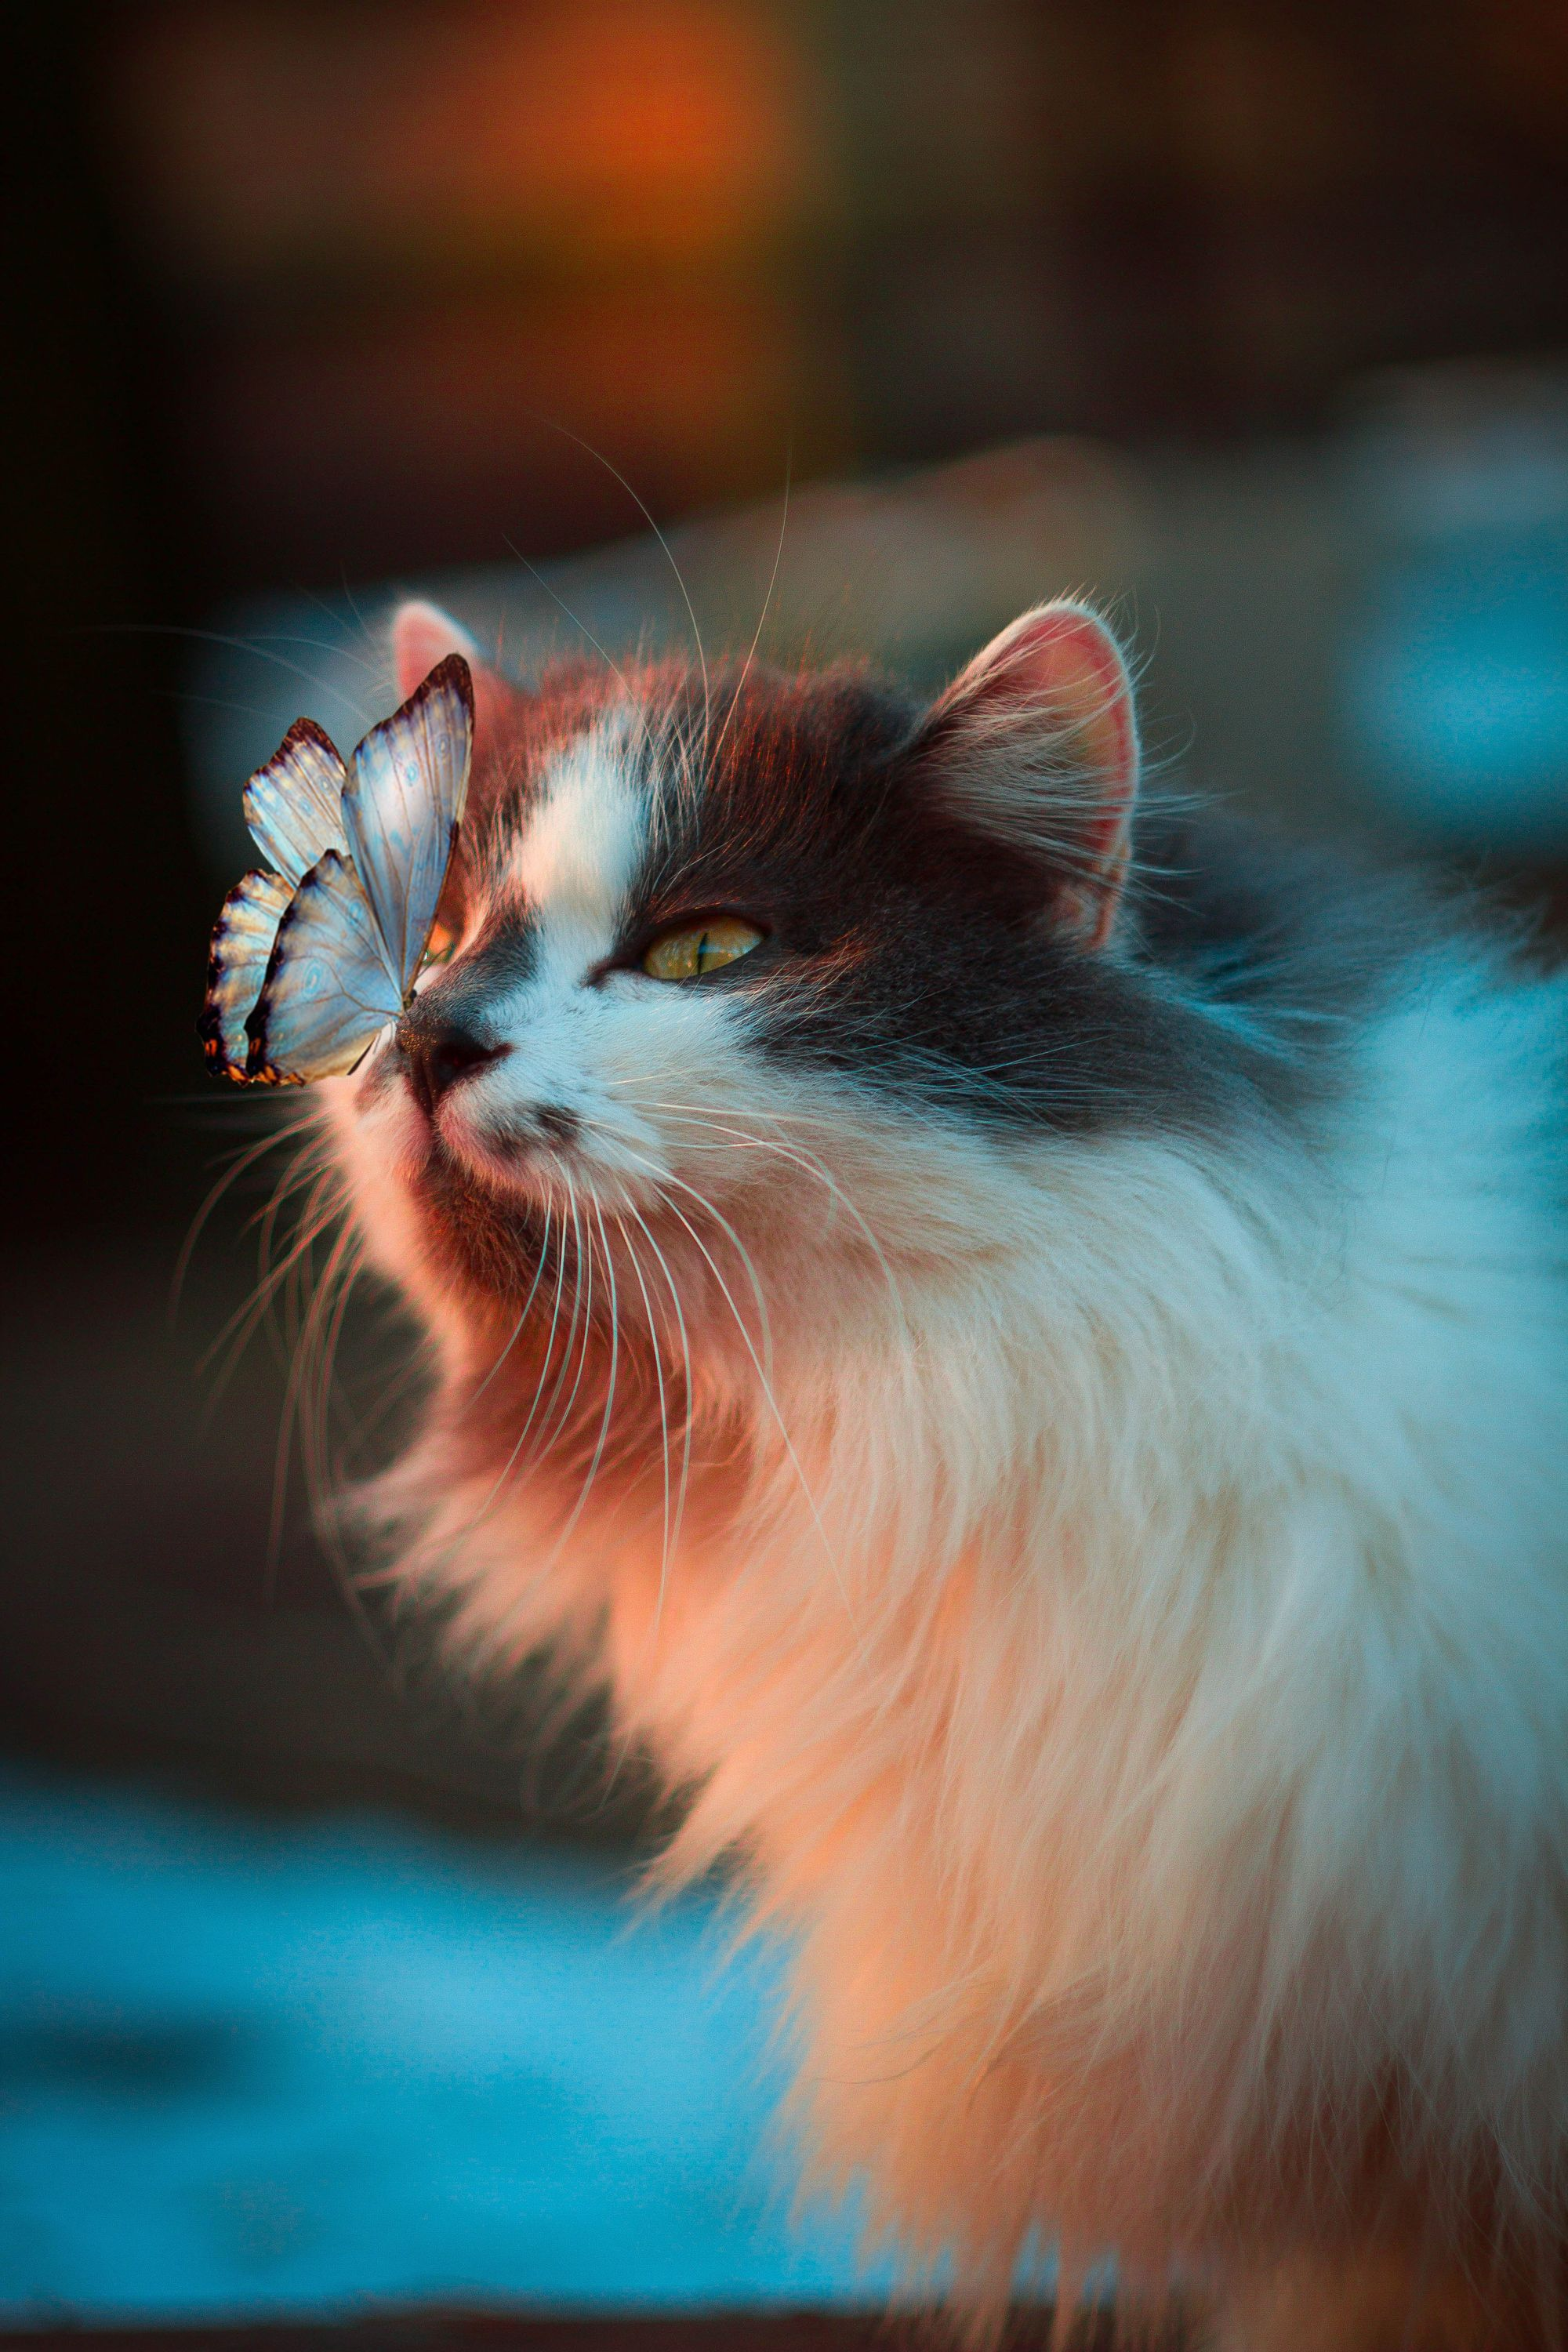 What A Beautiful Cat And Butterfly Follow Us Https Pinterest Com Humanegoods Catphotography Catphotog Cute Cat Wallpaper Cat Pics Beautiful Cats